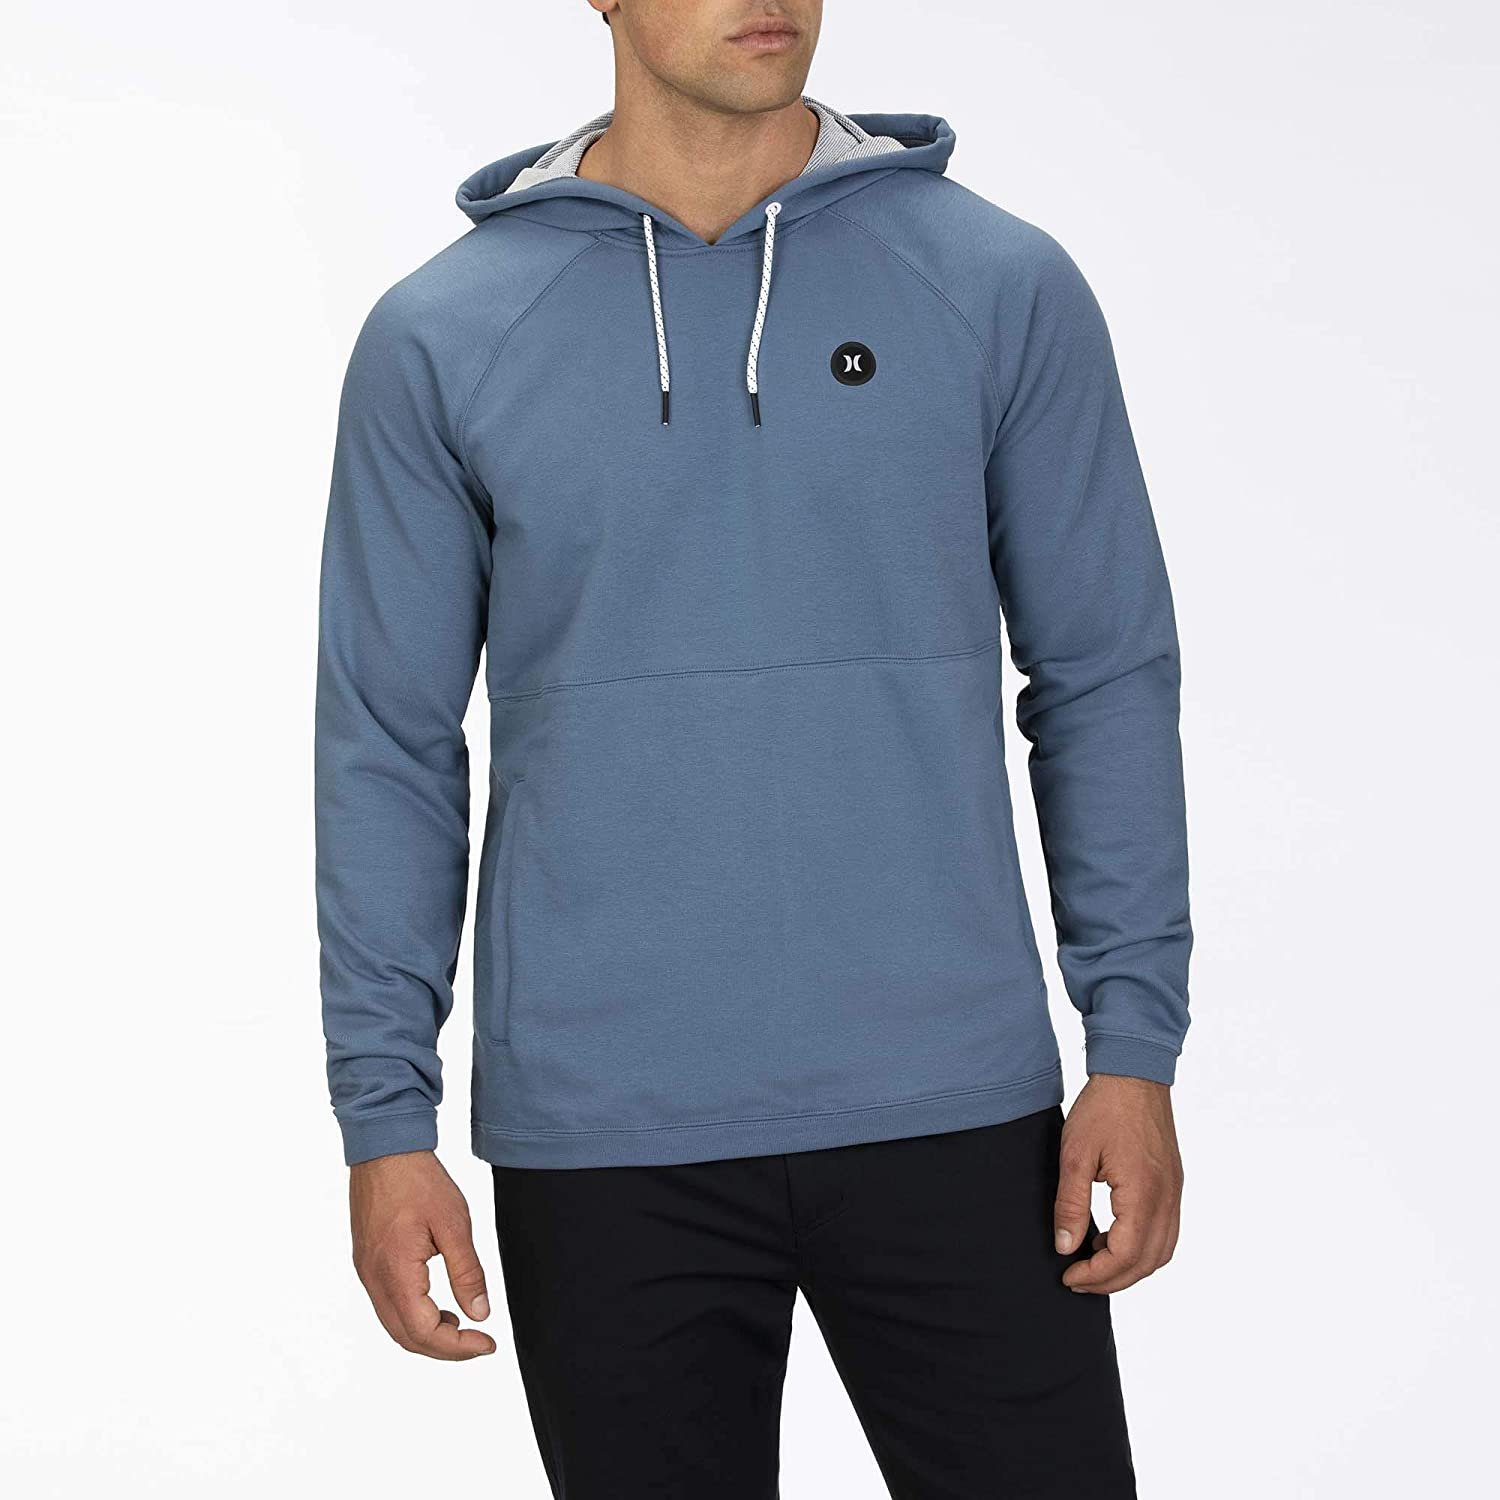 Hurley Dri-Fit Universal Pullover Hoody - Thunderstorm: Clothing